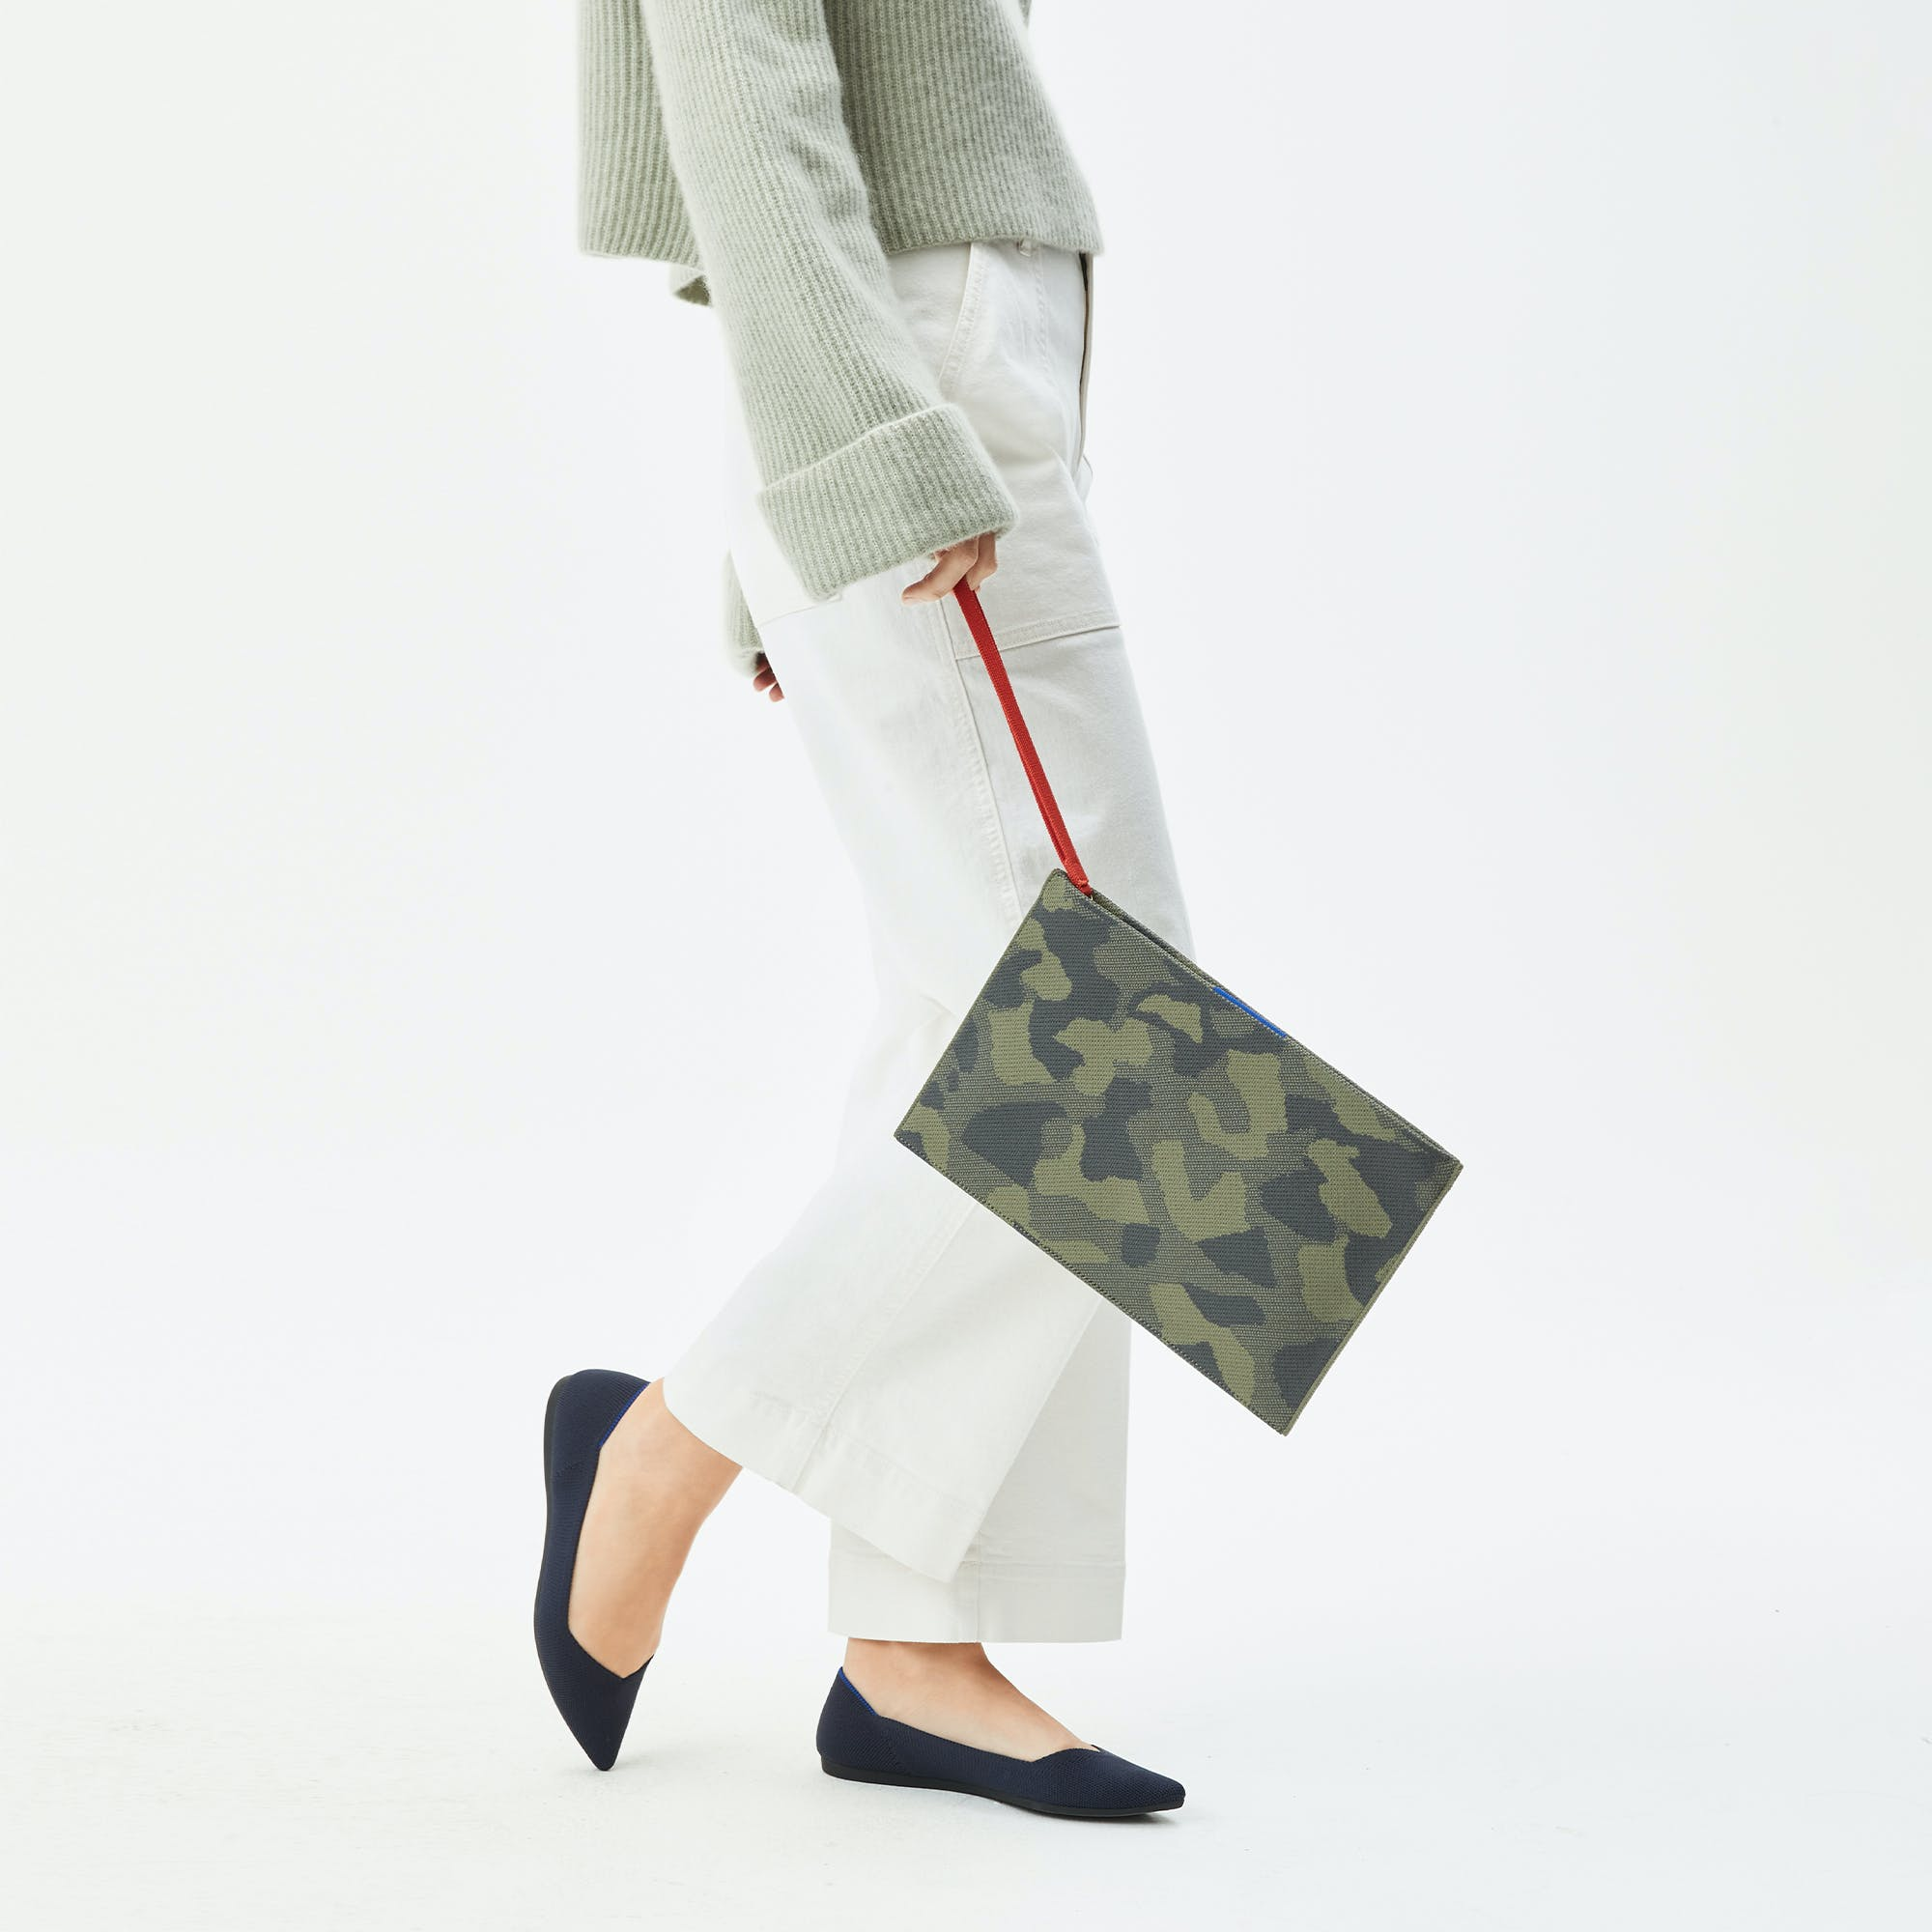 The Essential Pouch in Sage Camo shown from the front.